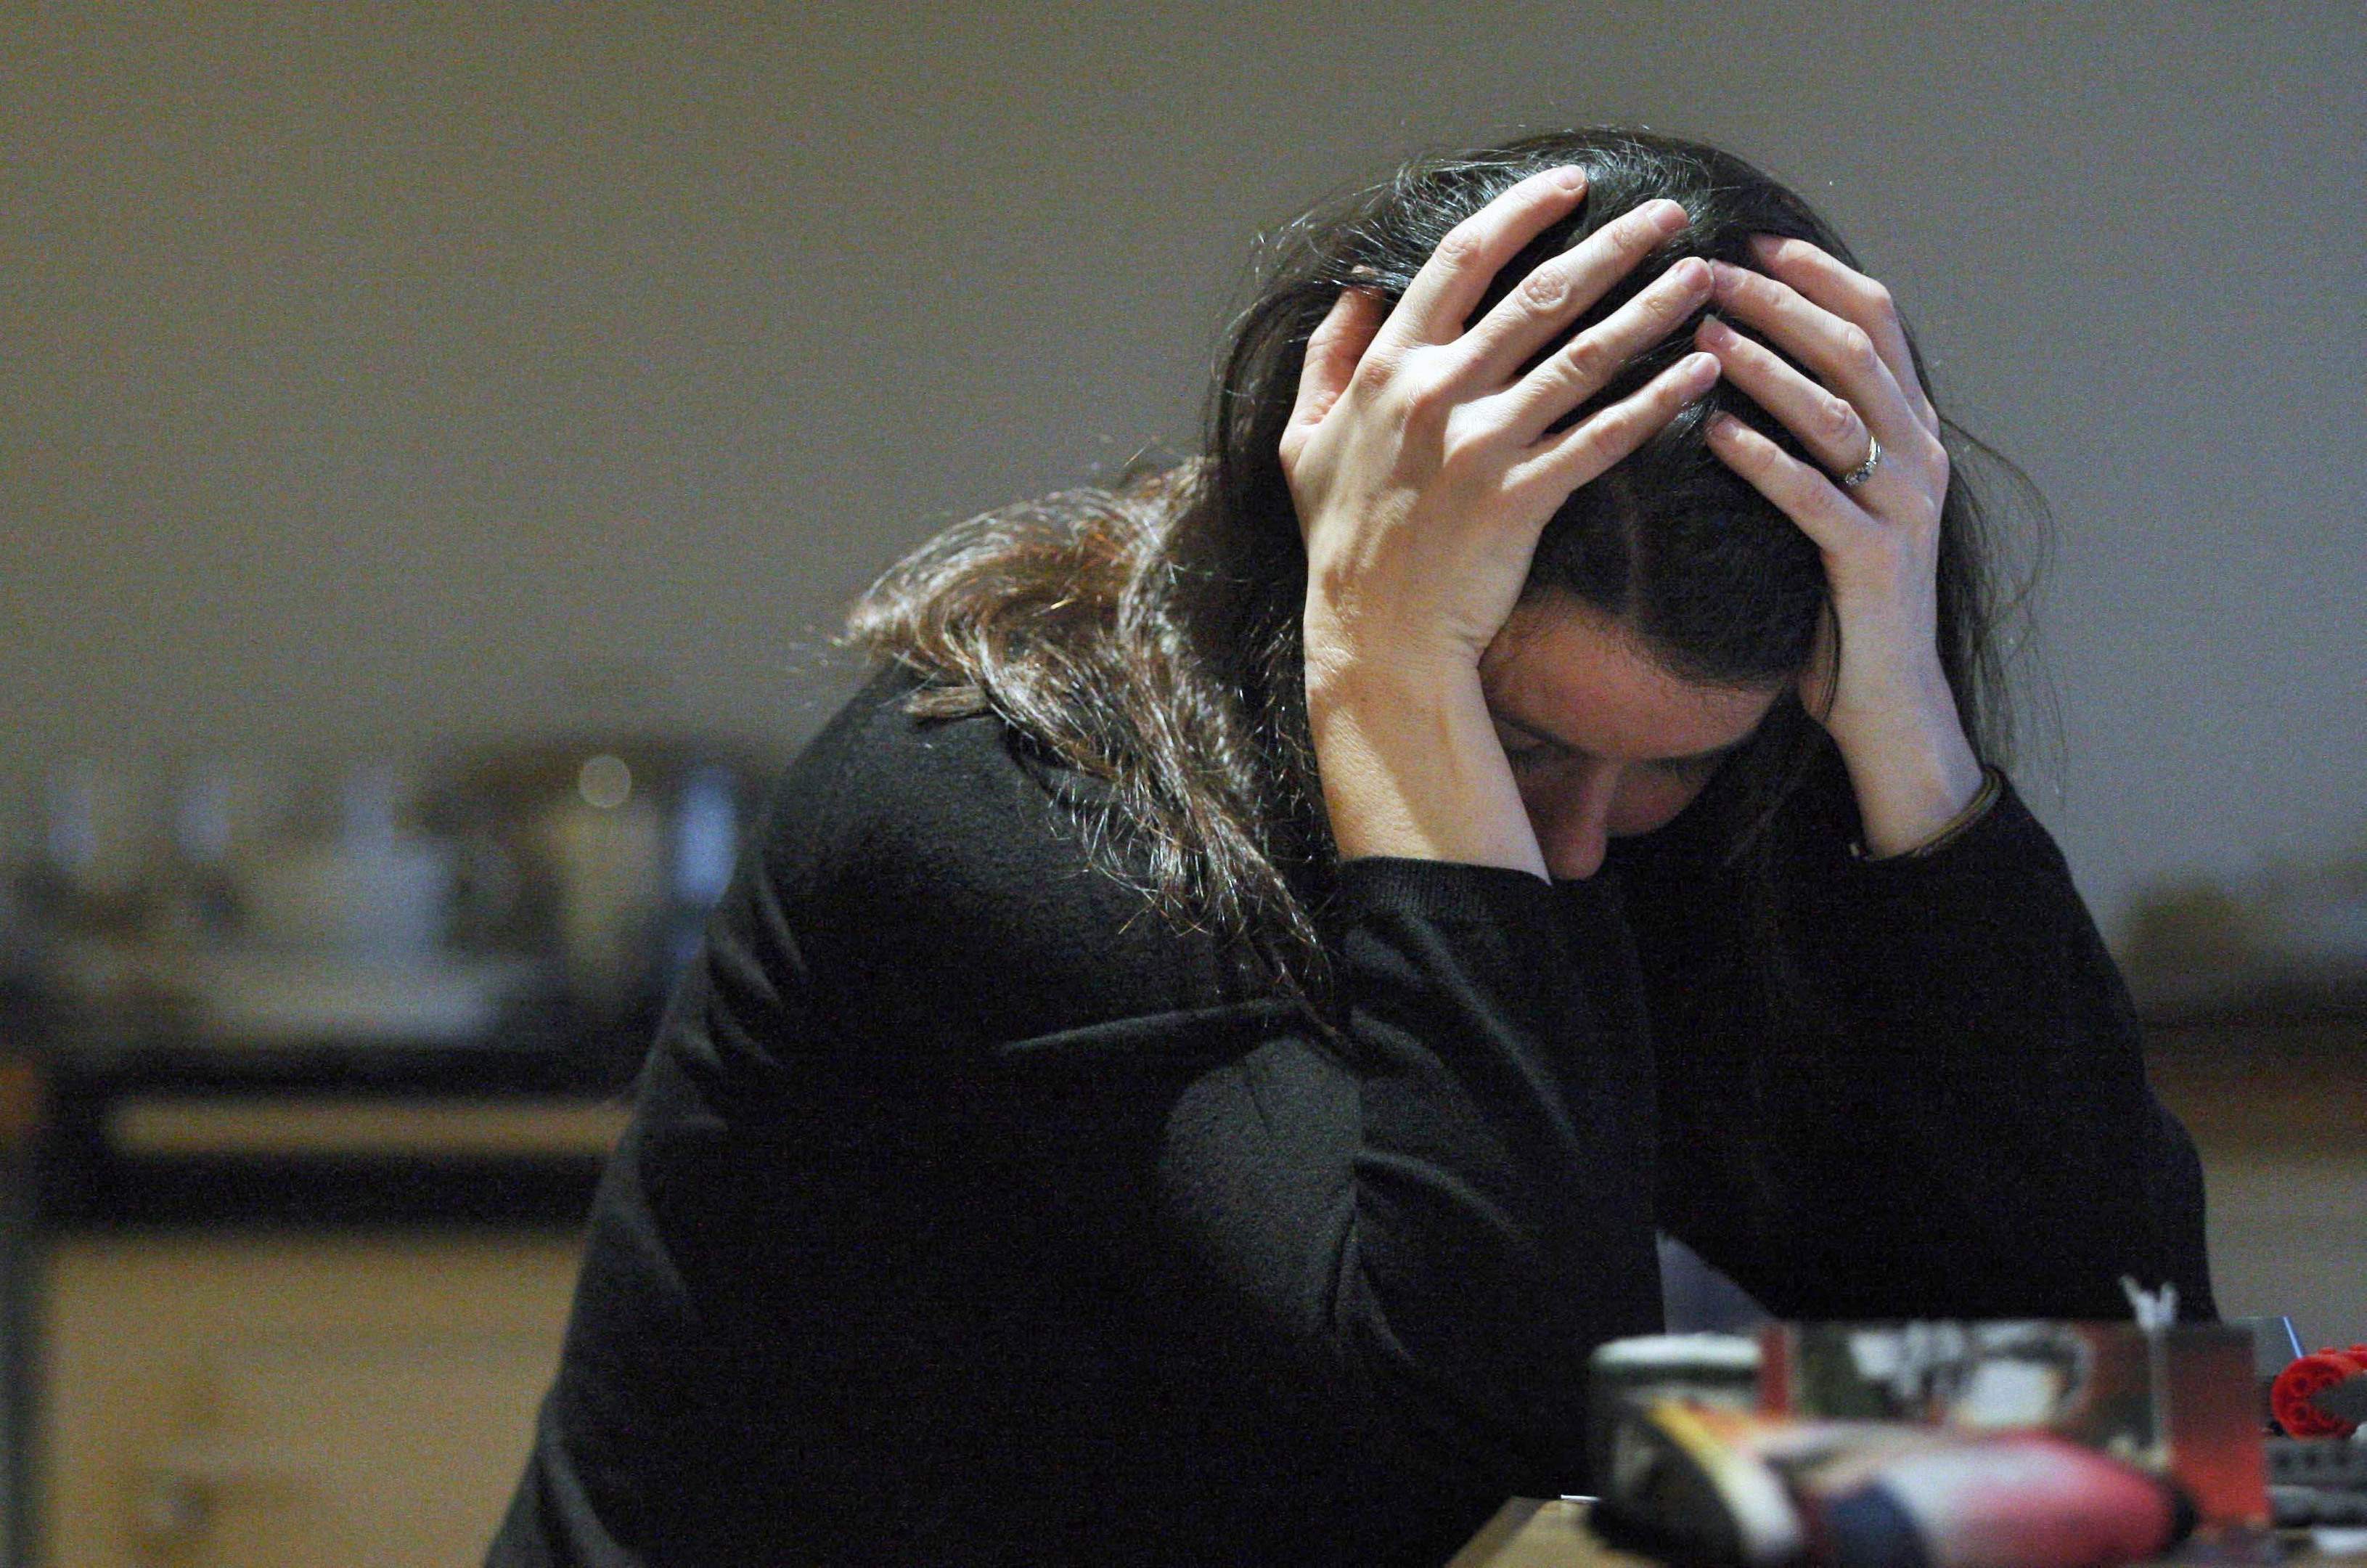 There has been an increase in the number of children needing treatment for mental health issues.